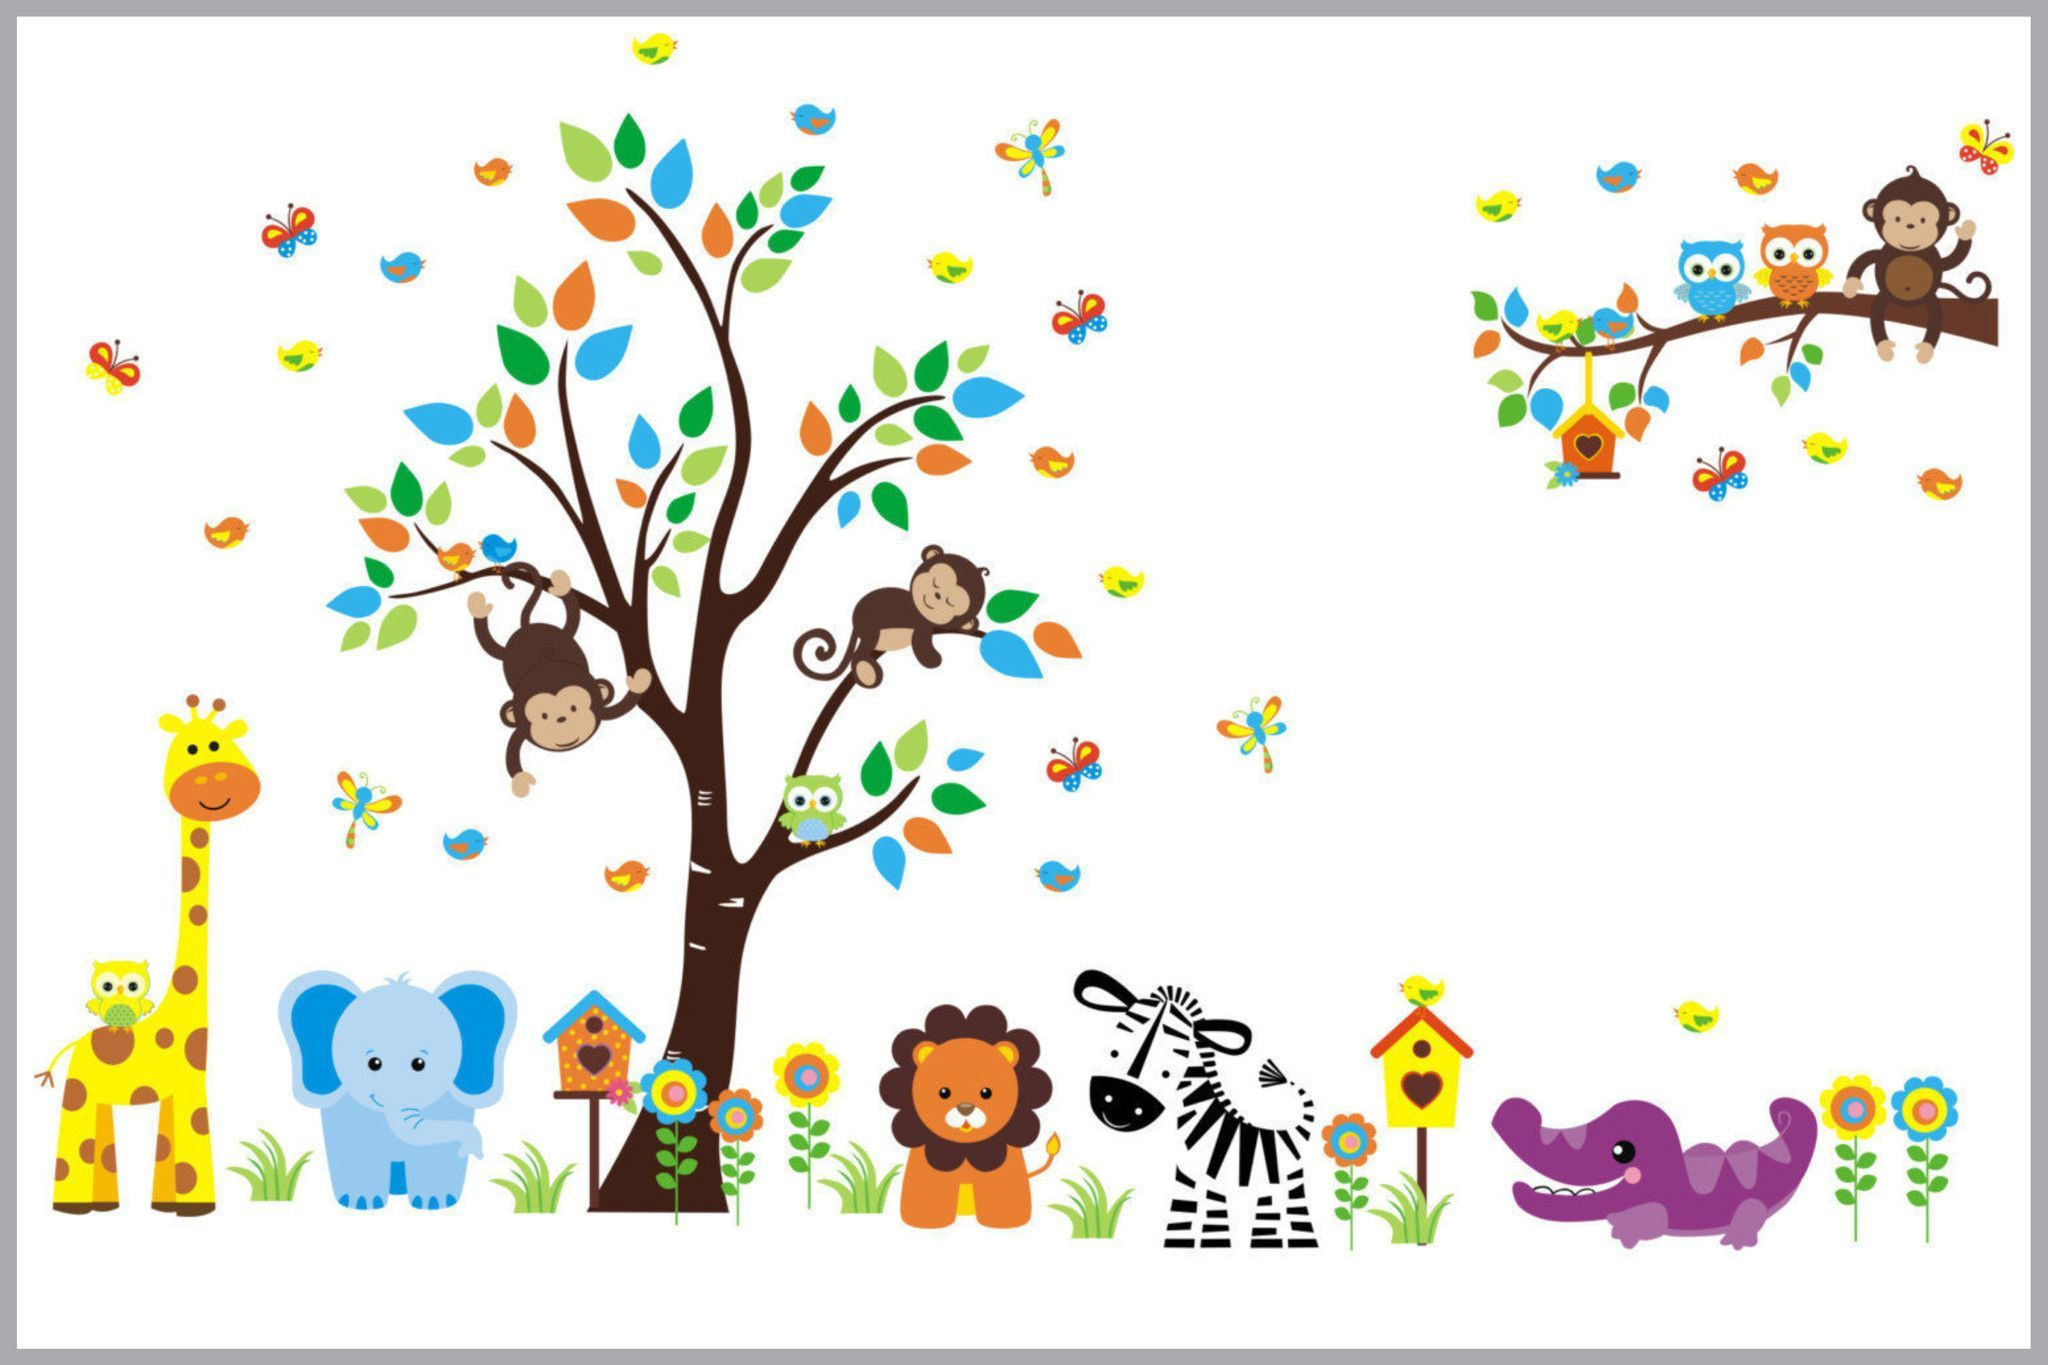 Best Nursery Decals Huge Layout with Lots of Cute